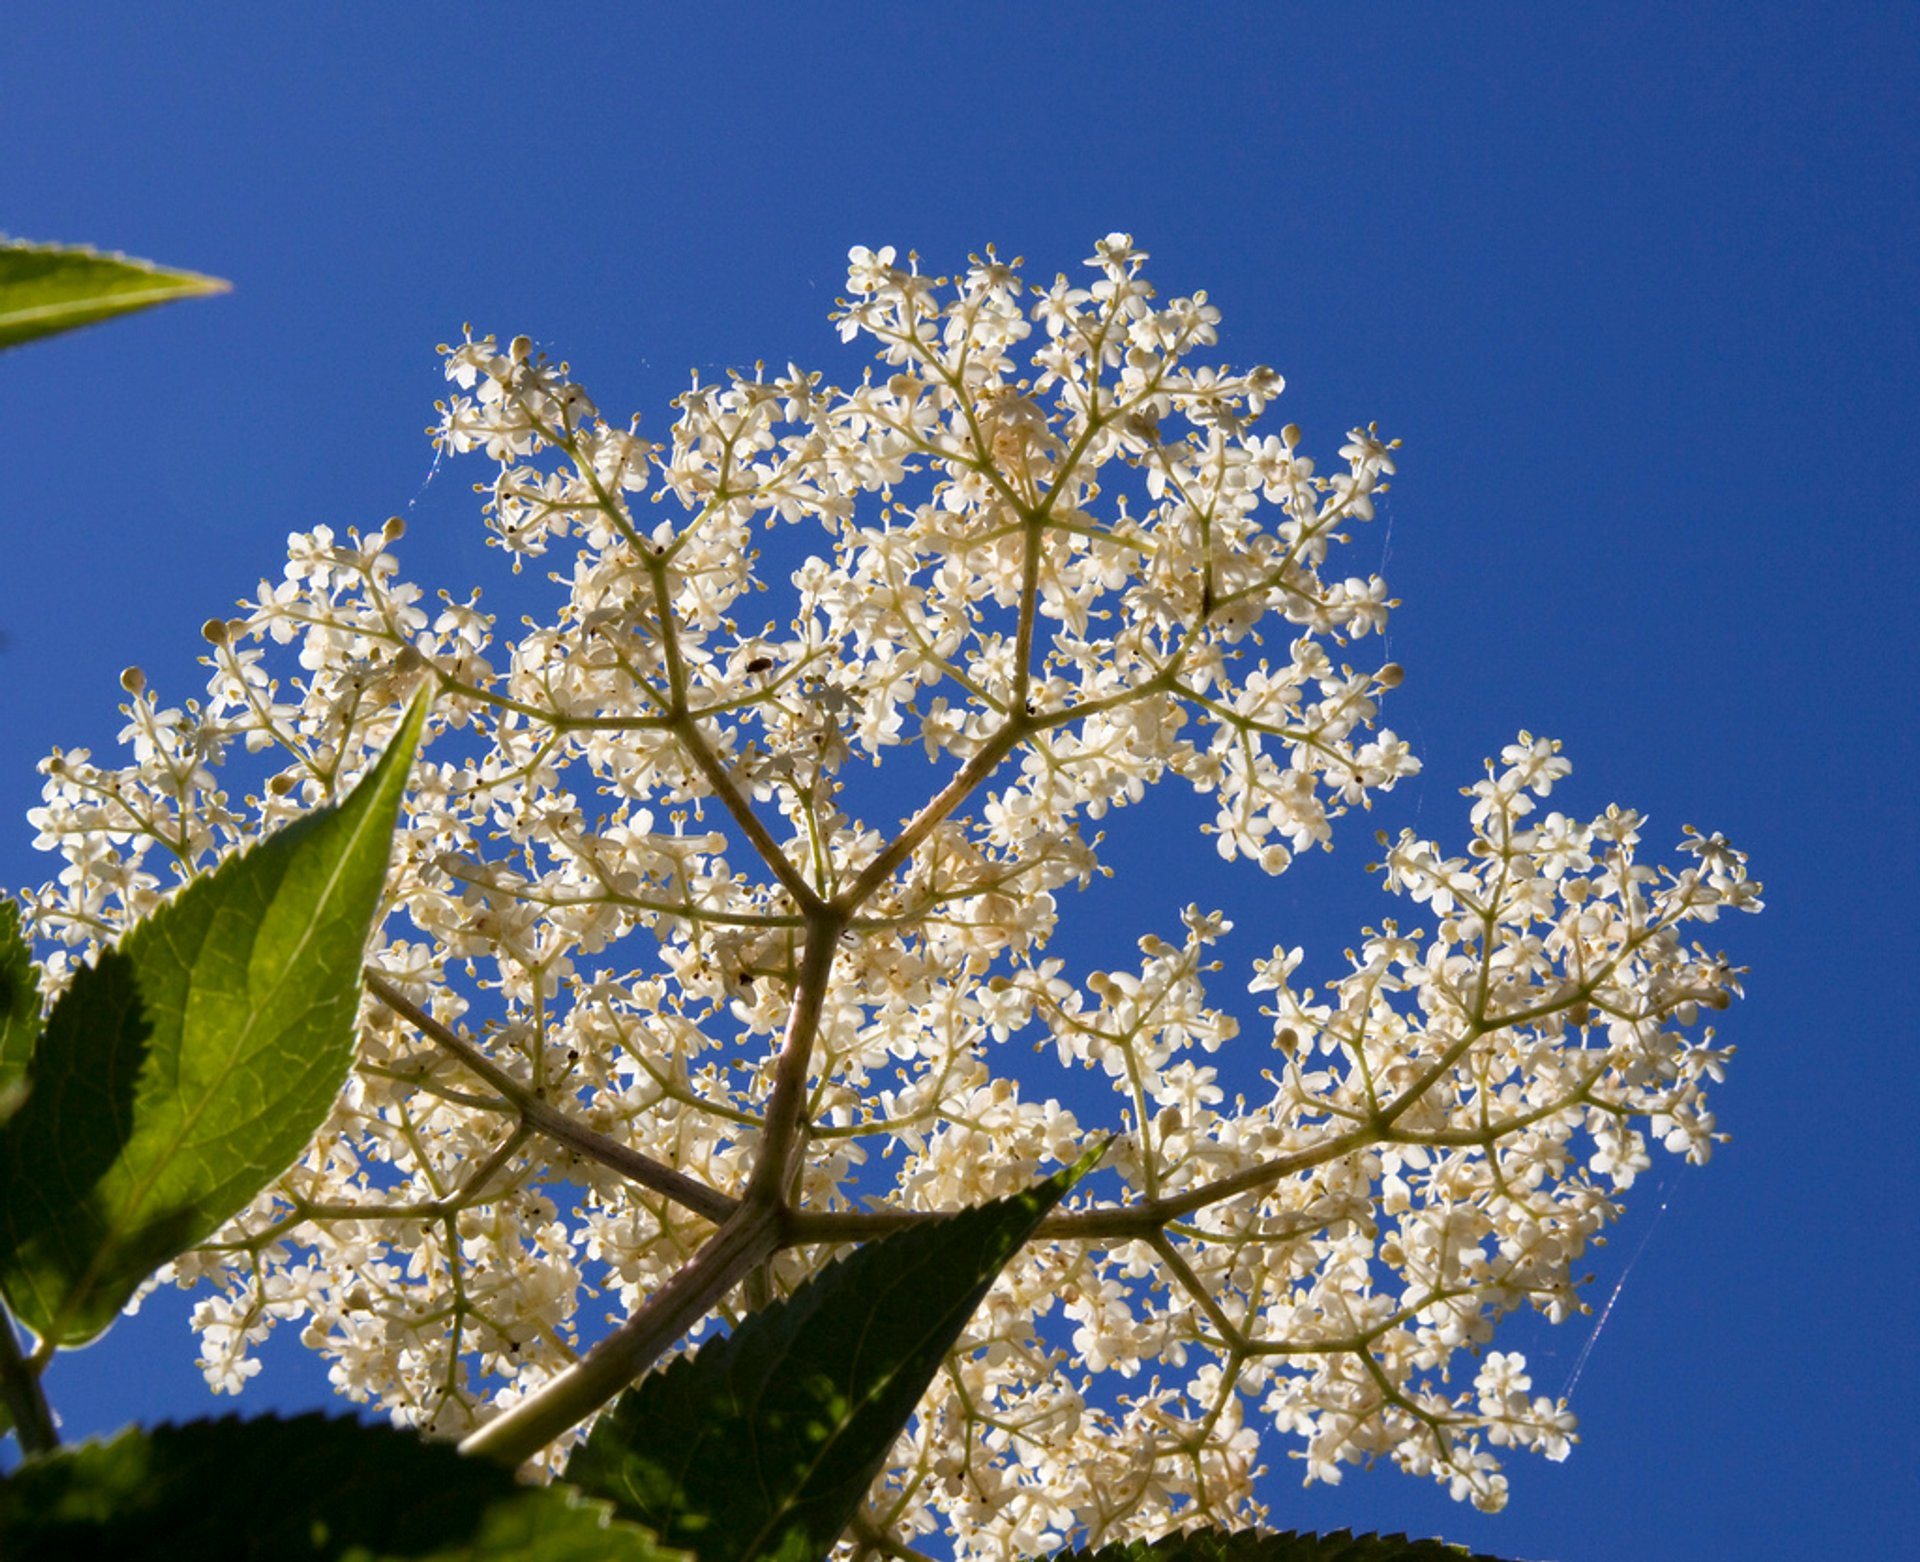 Elderflowers in England 2020 - Best Time